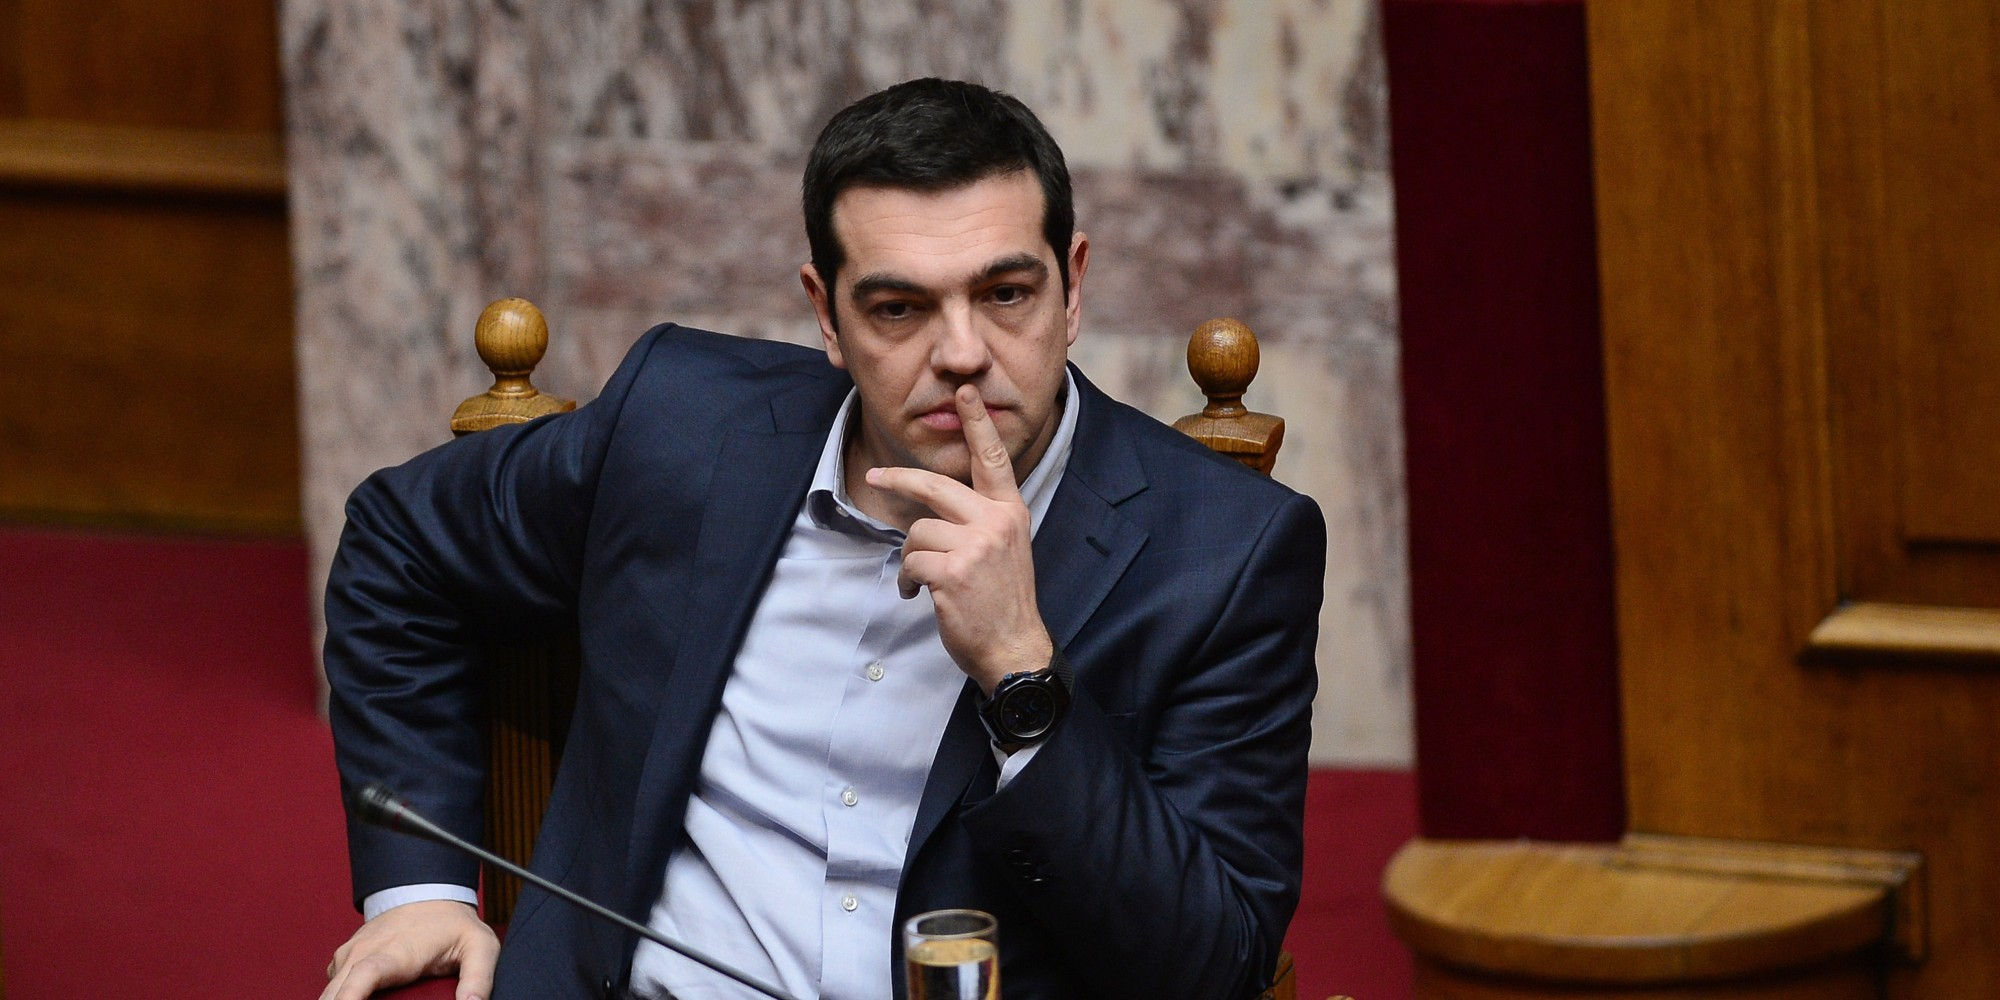 SYRIZA MPs are preparing a letter to Tsipras